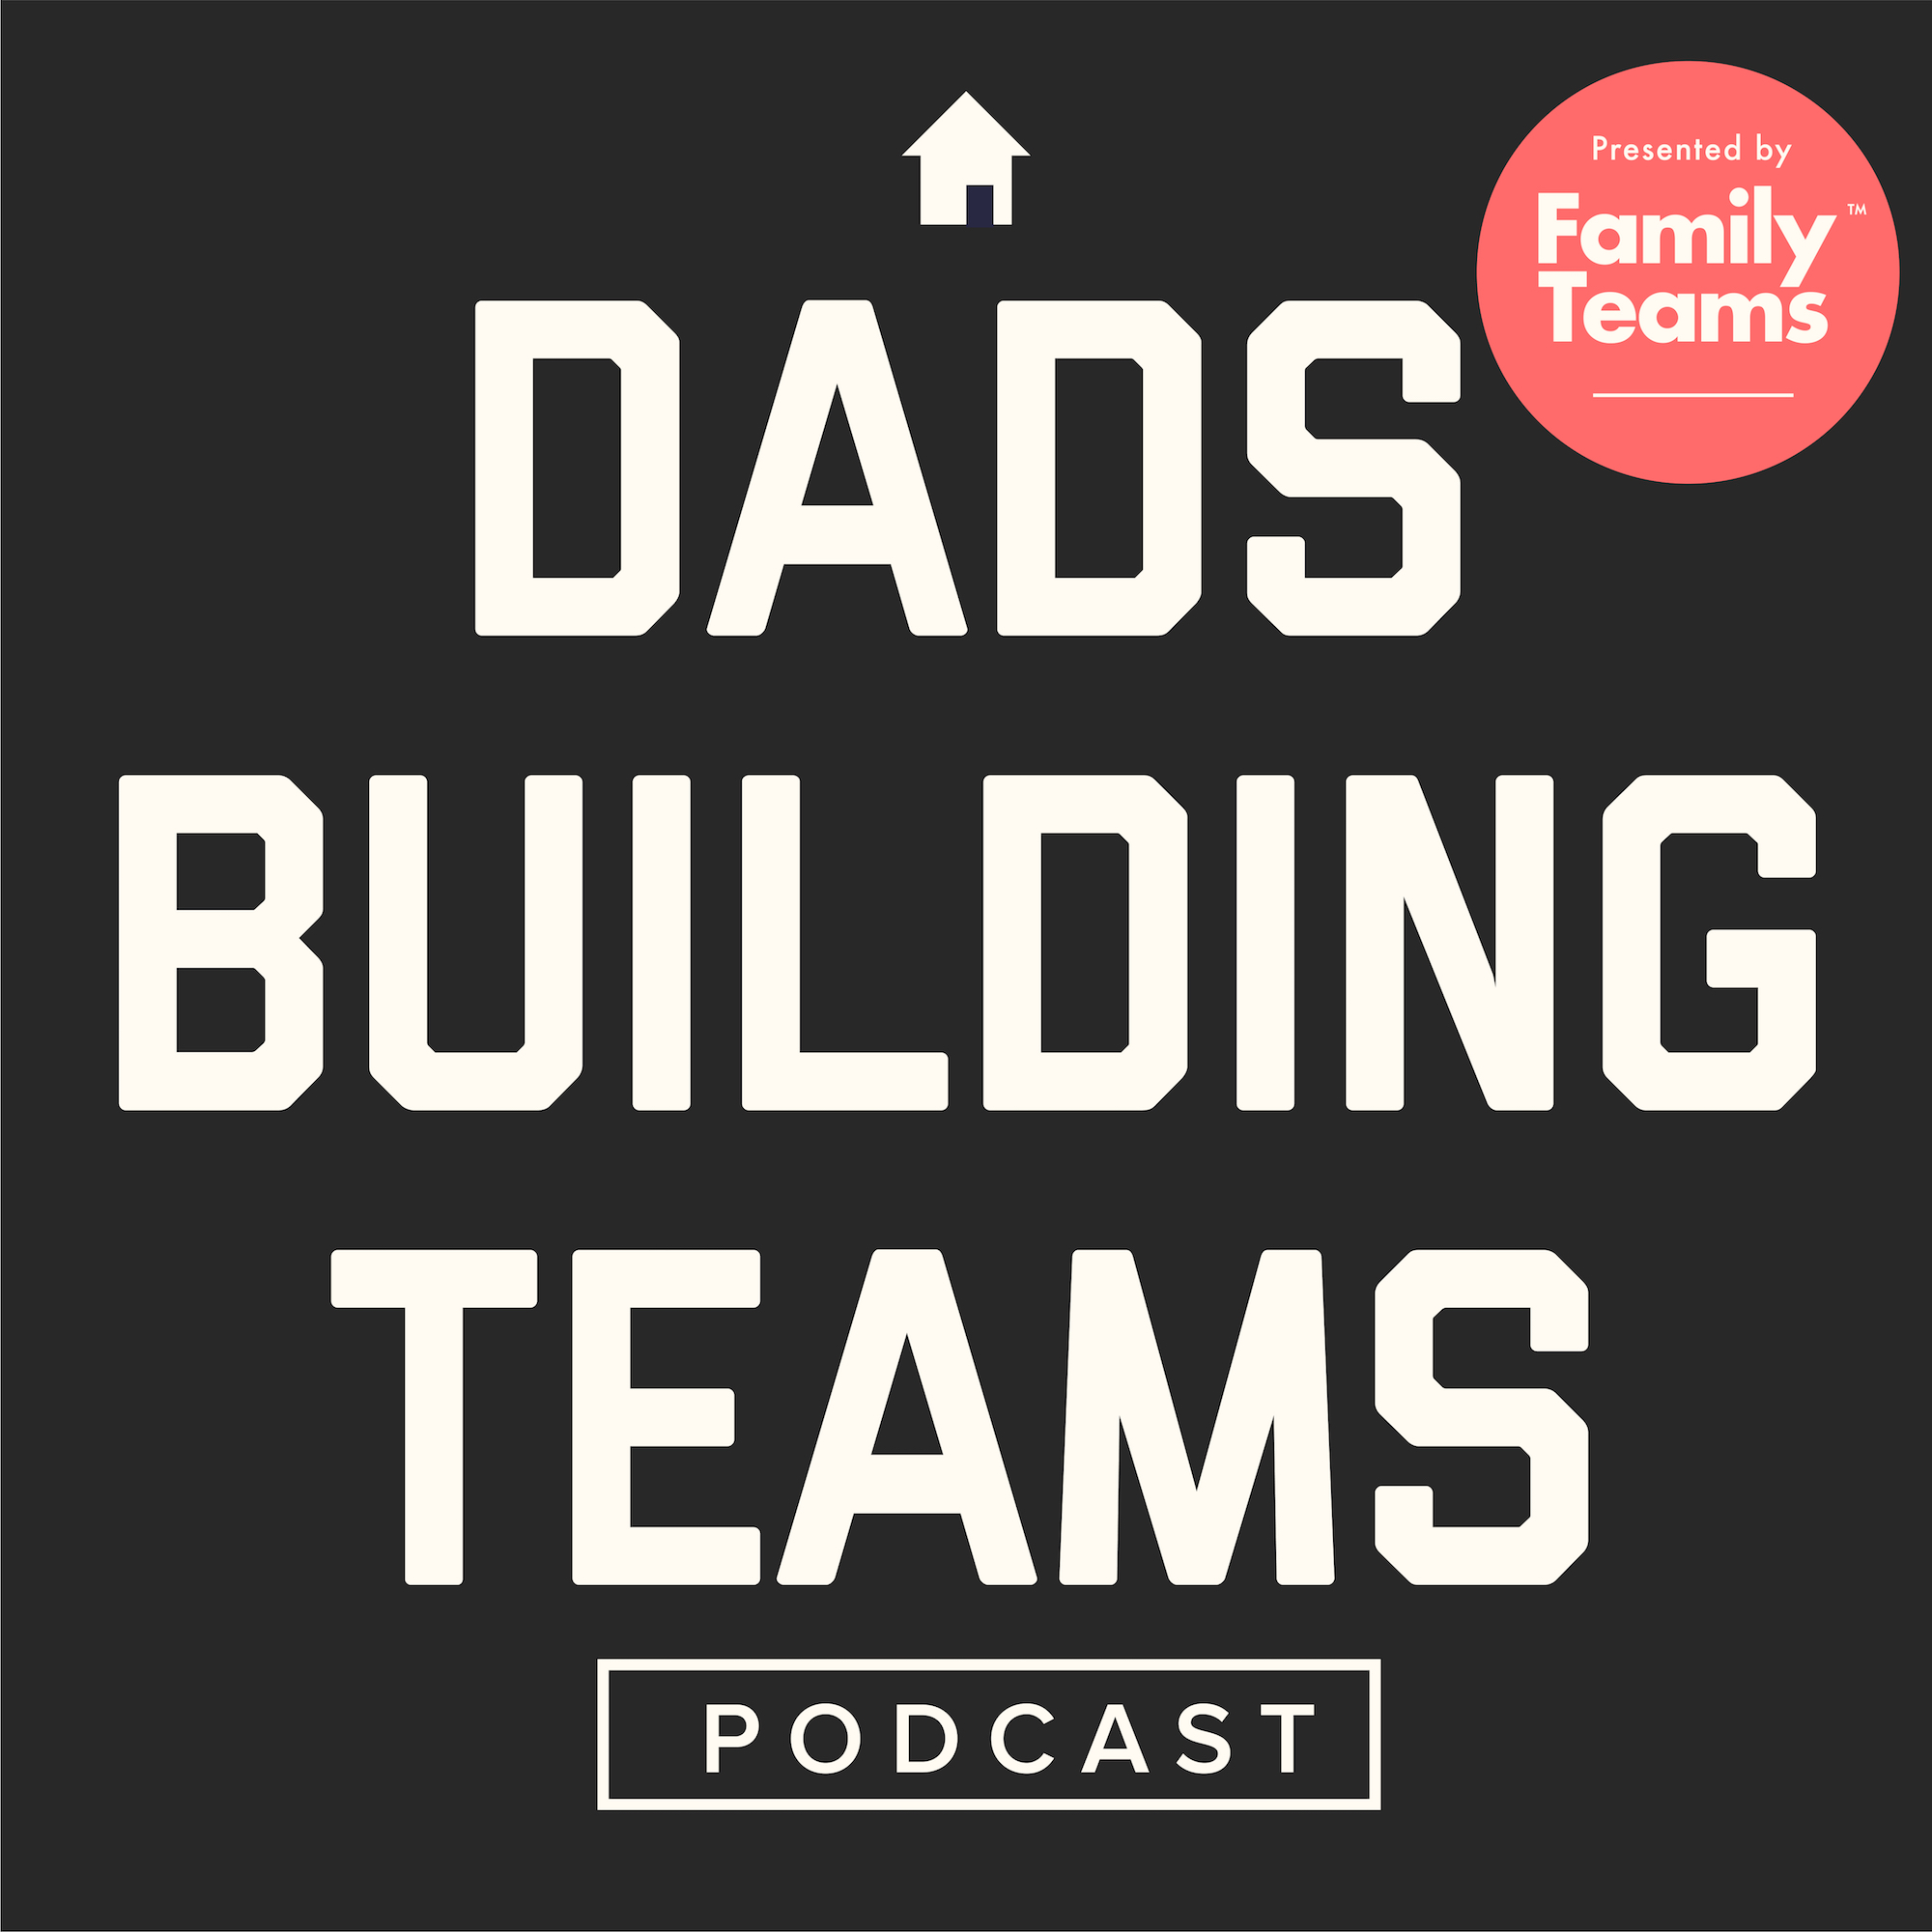 Dads Building Teams